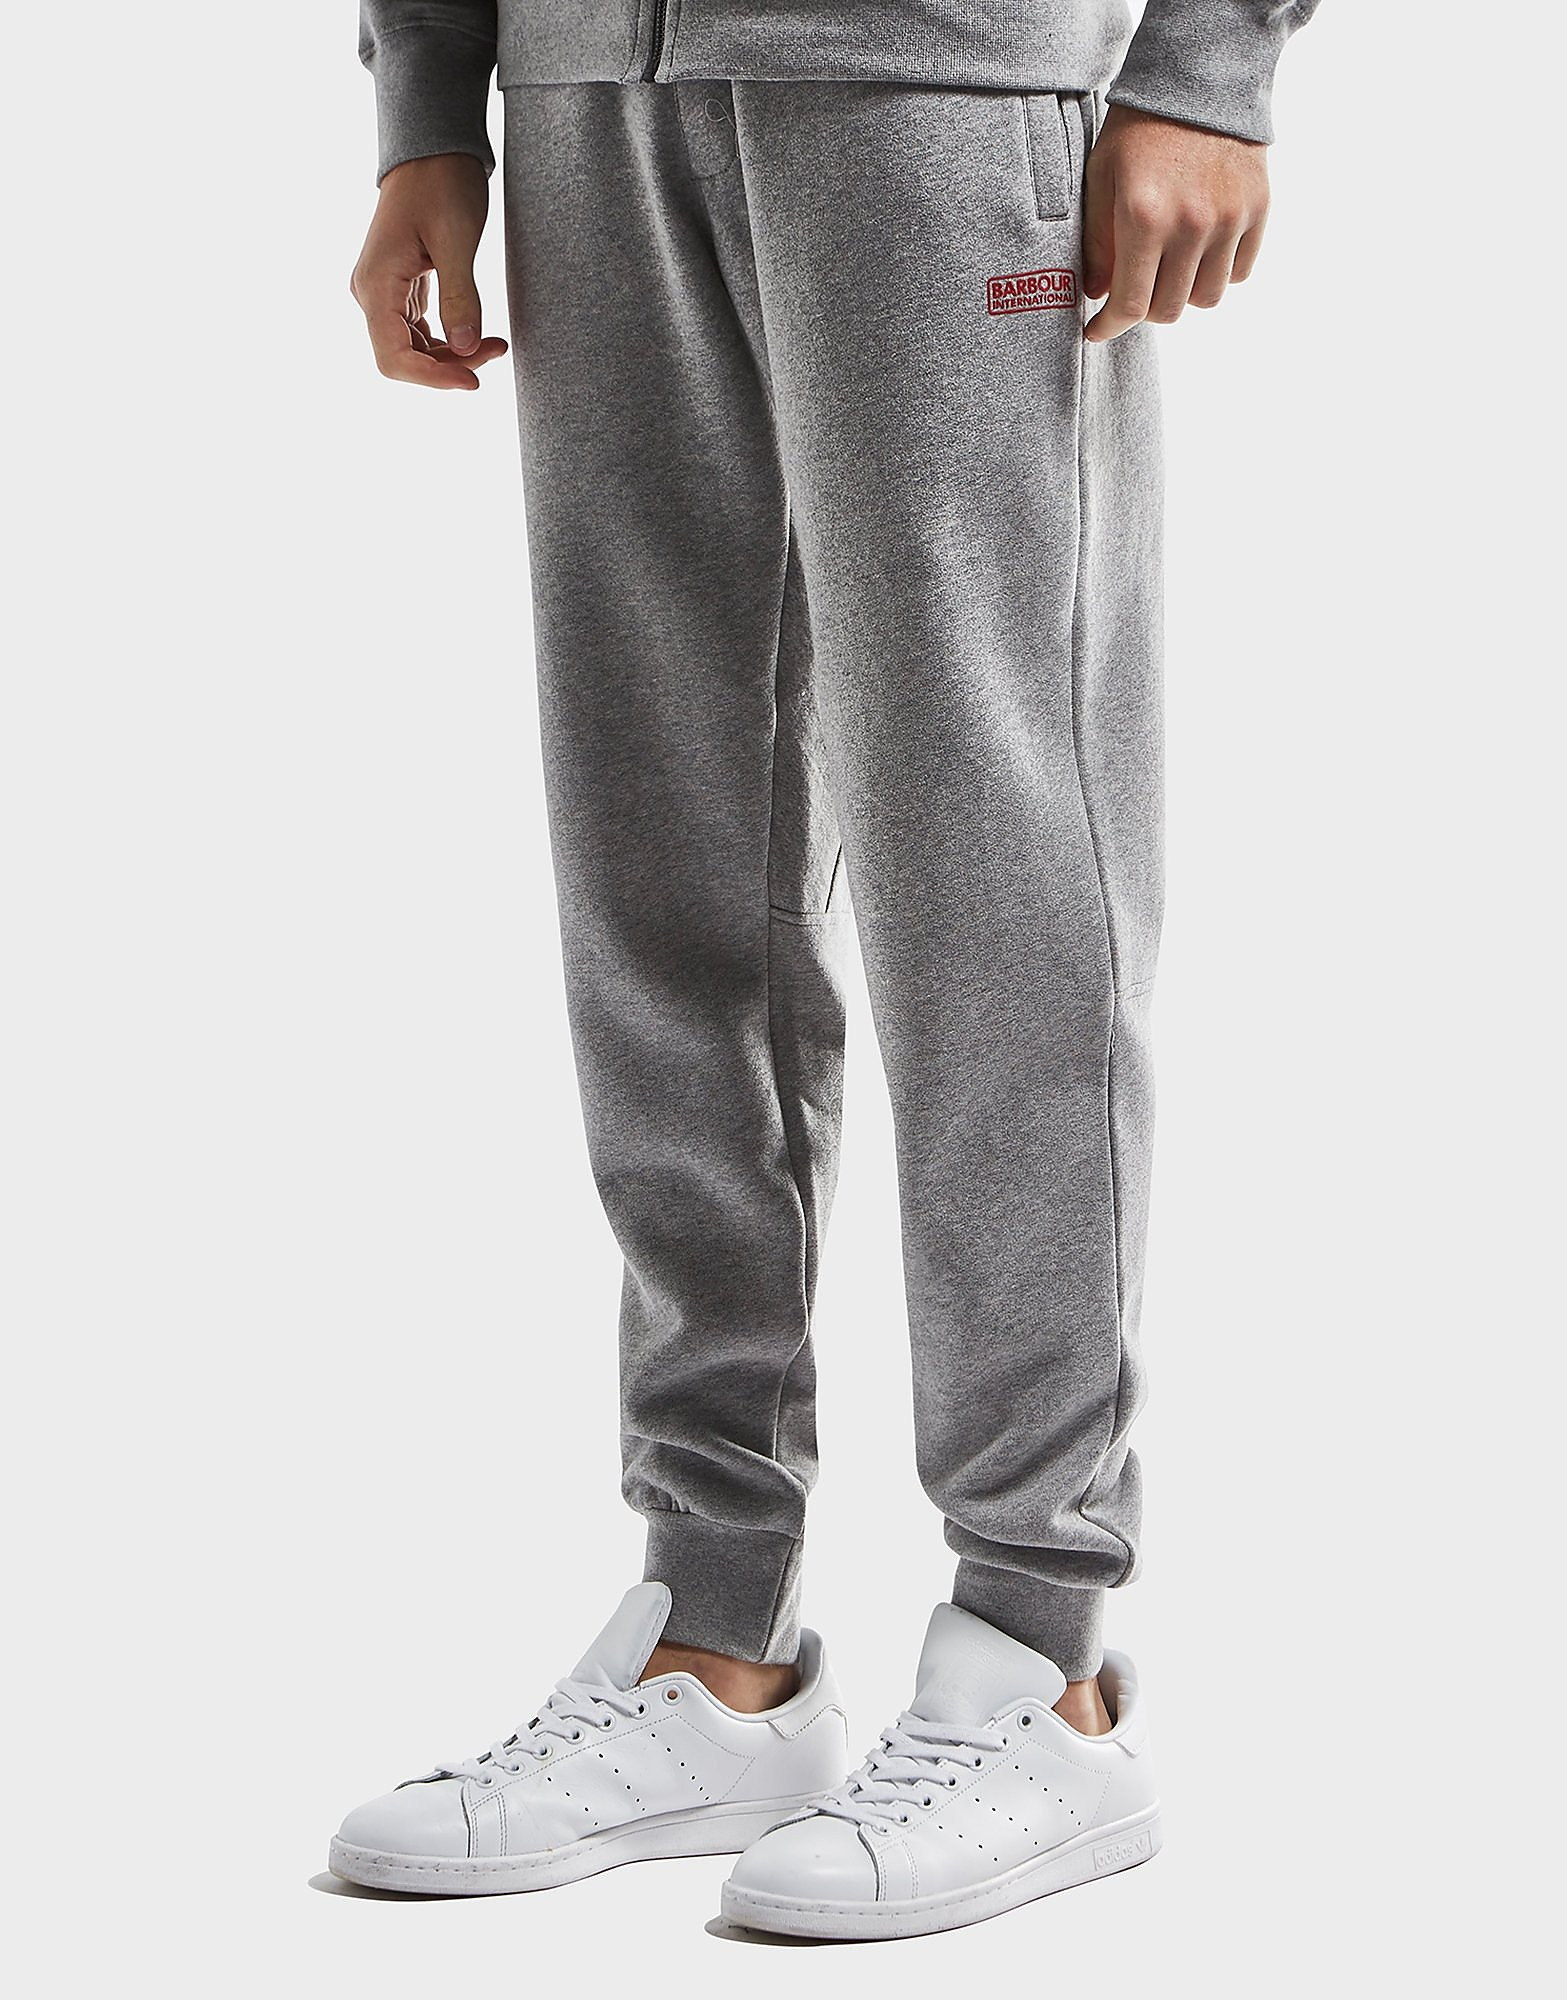 Barbour International Track Pant - Exclusive